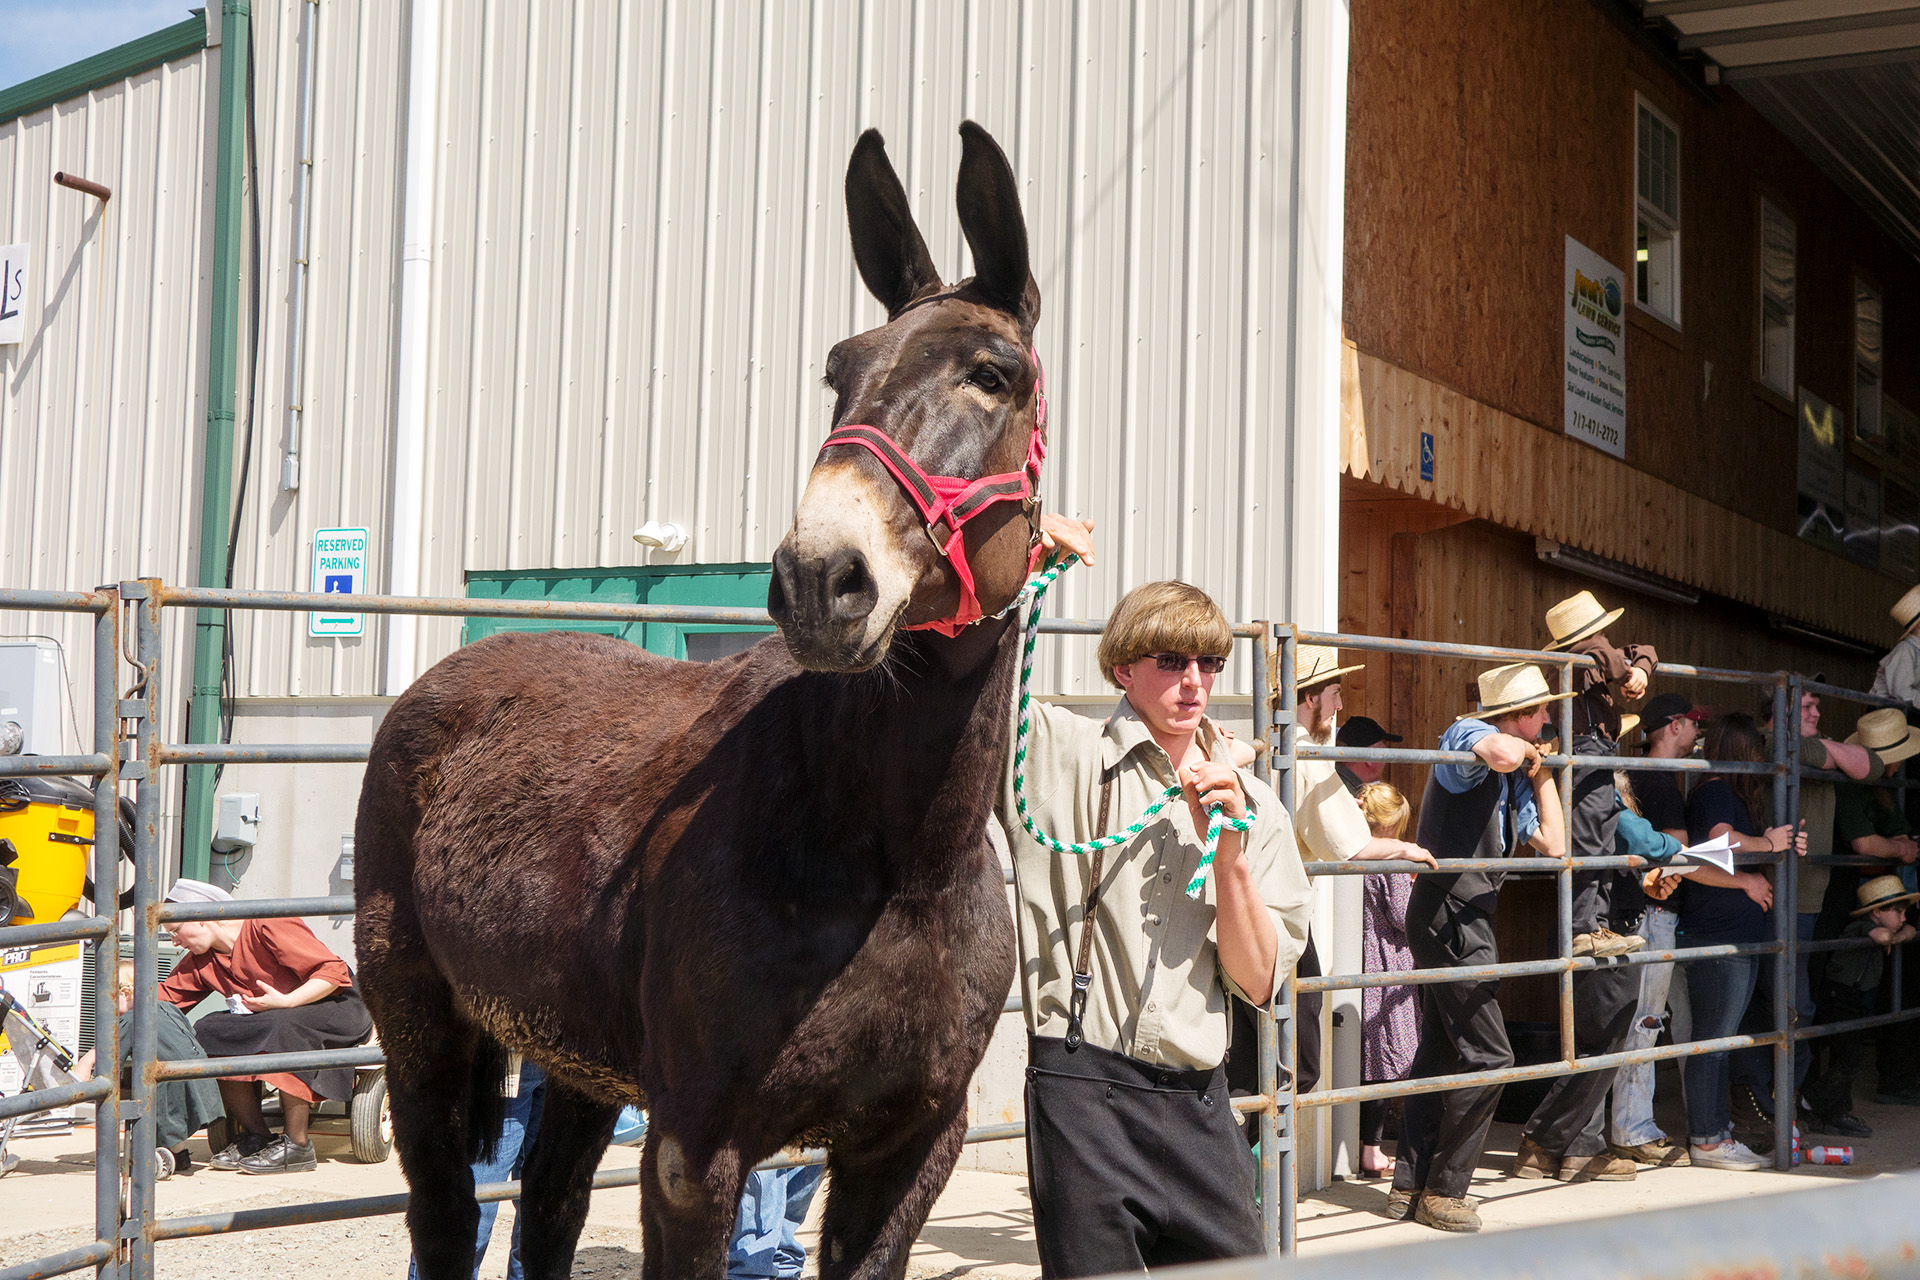 A mule hybrid up for auction.